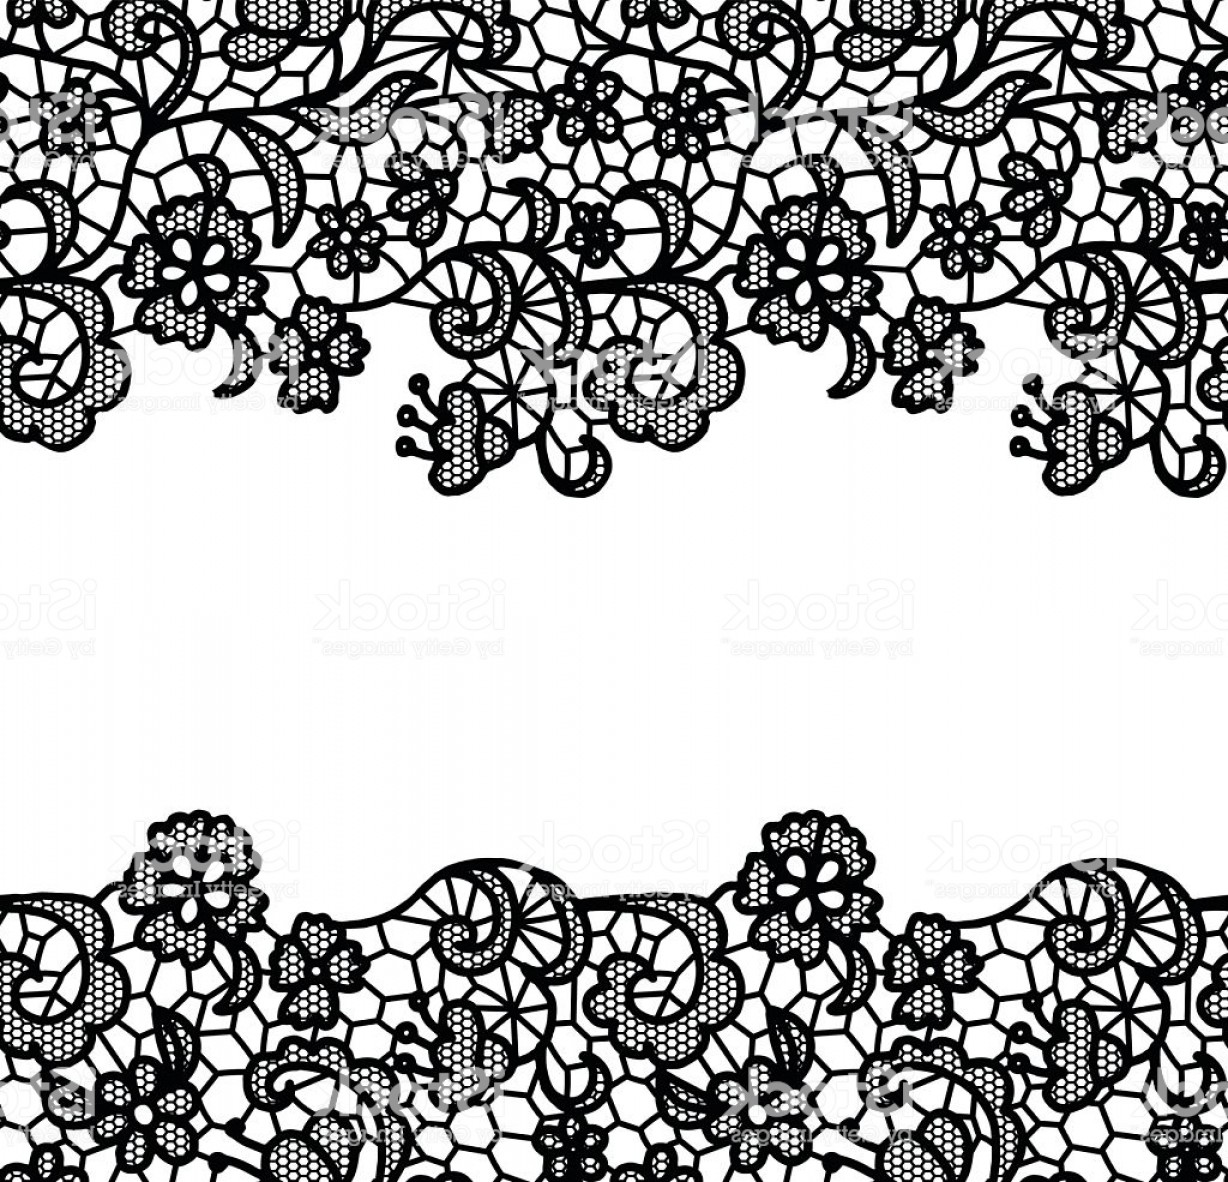 Floral Lace Trim Vector: Seamless Lace Border Invitation Card Gm